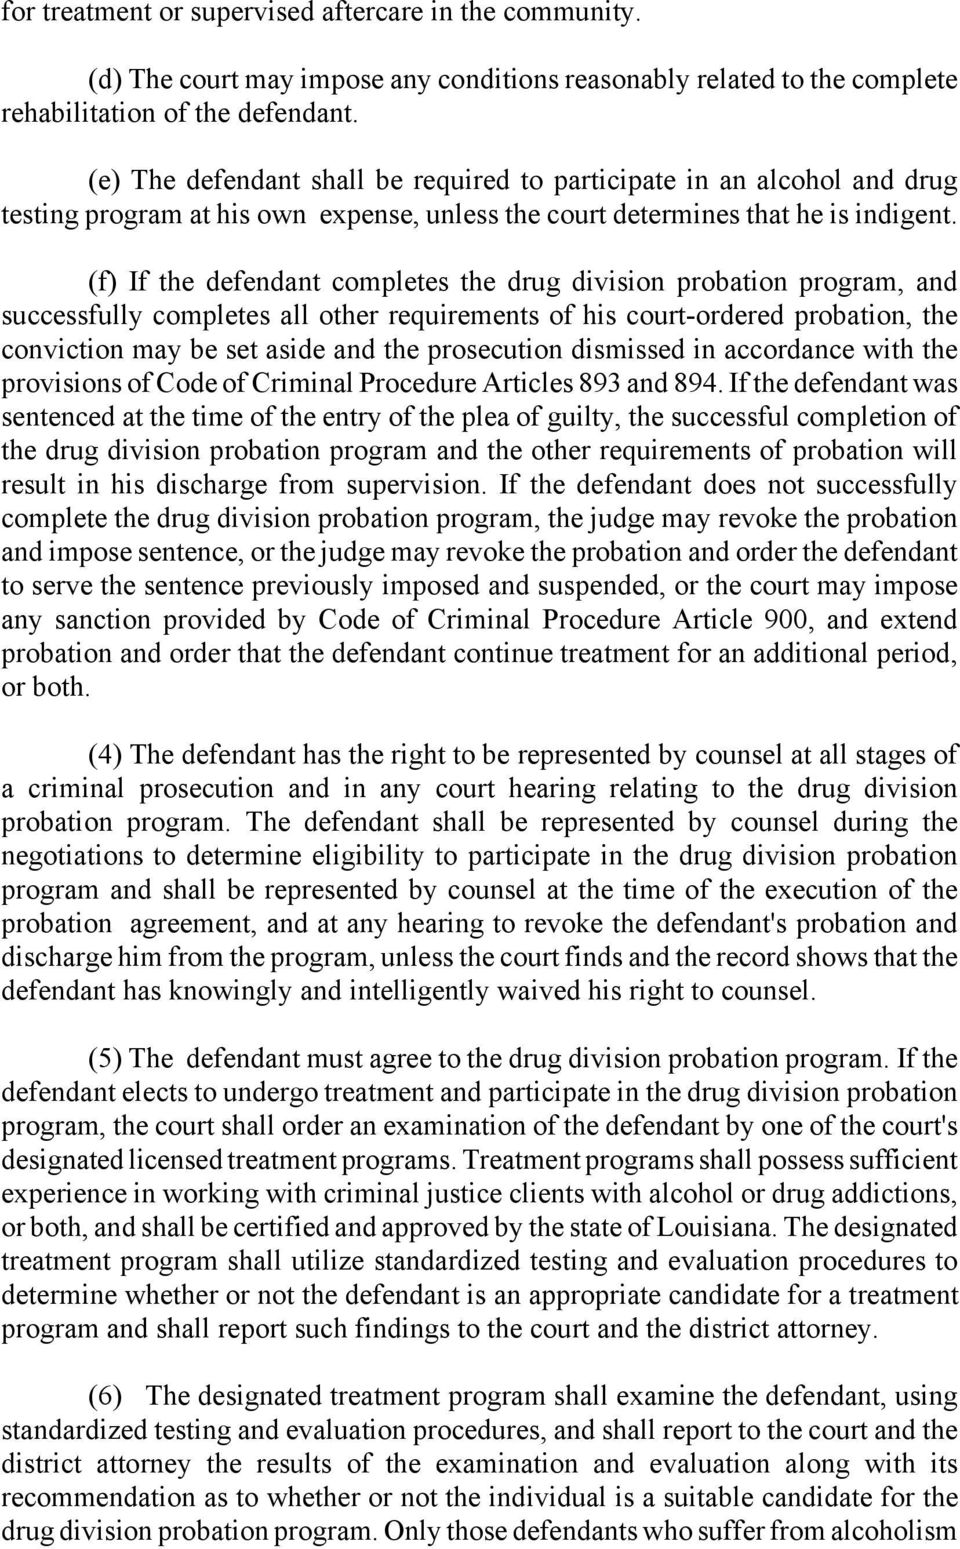 (f) If the defendant completes the drug division probation program, and successfully completes all other requirements of his court-ordered probation, the conviction may be set aside and the